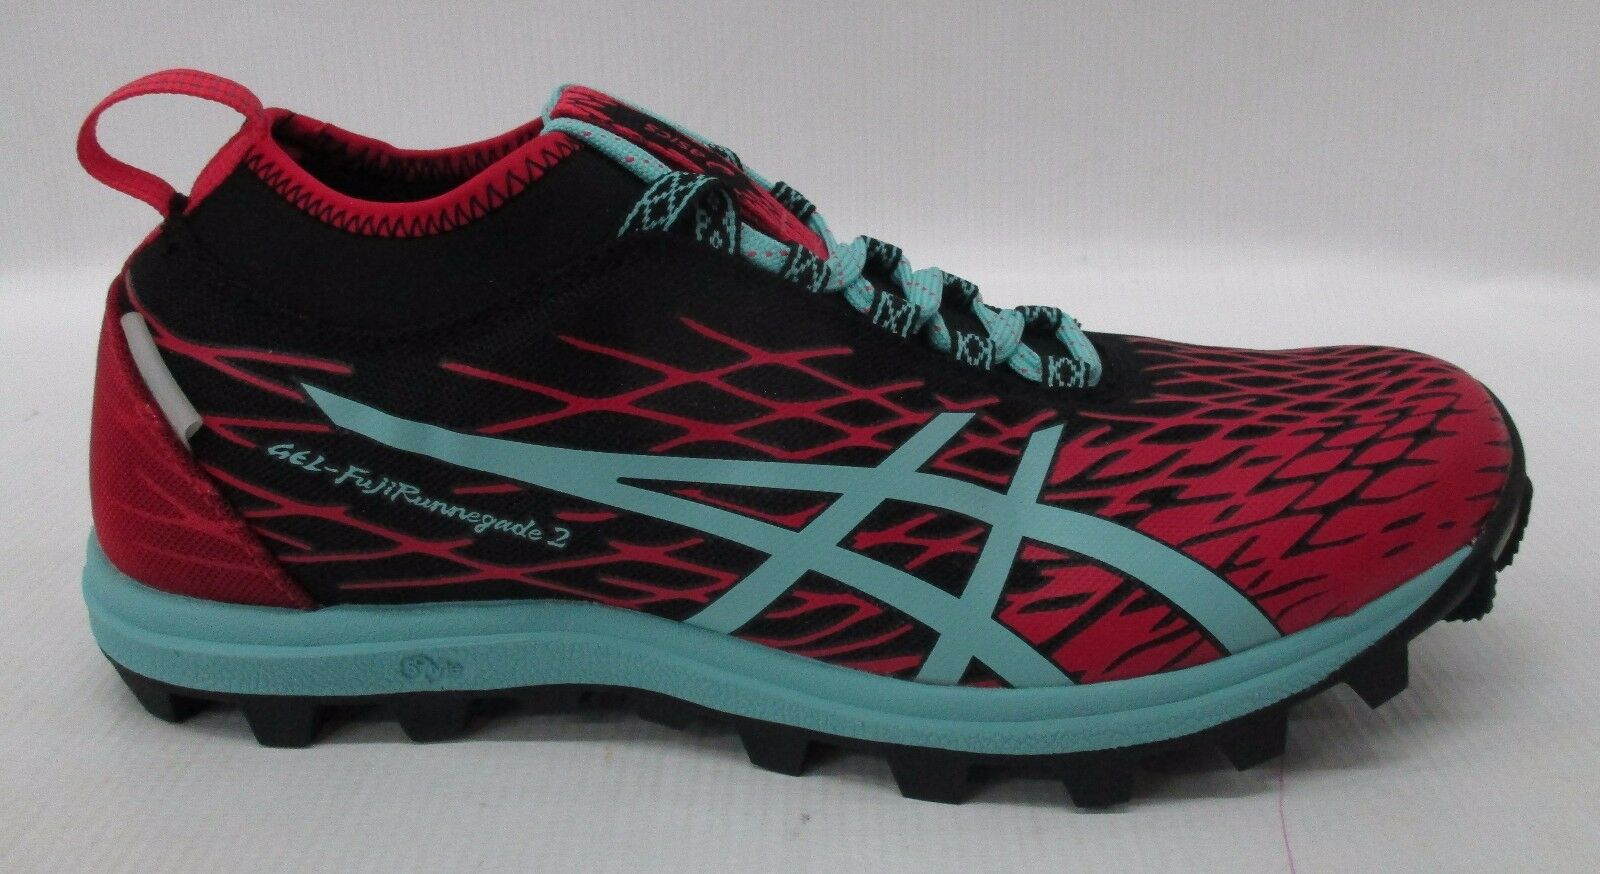 Asics Womens Gel-FujiRunnegade 2 Shoes T683N 9039 Black/Pool Blue/Azalea Sz 10.5 New shoes for men and women, limited time discount